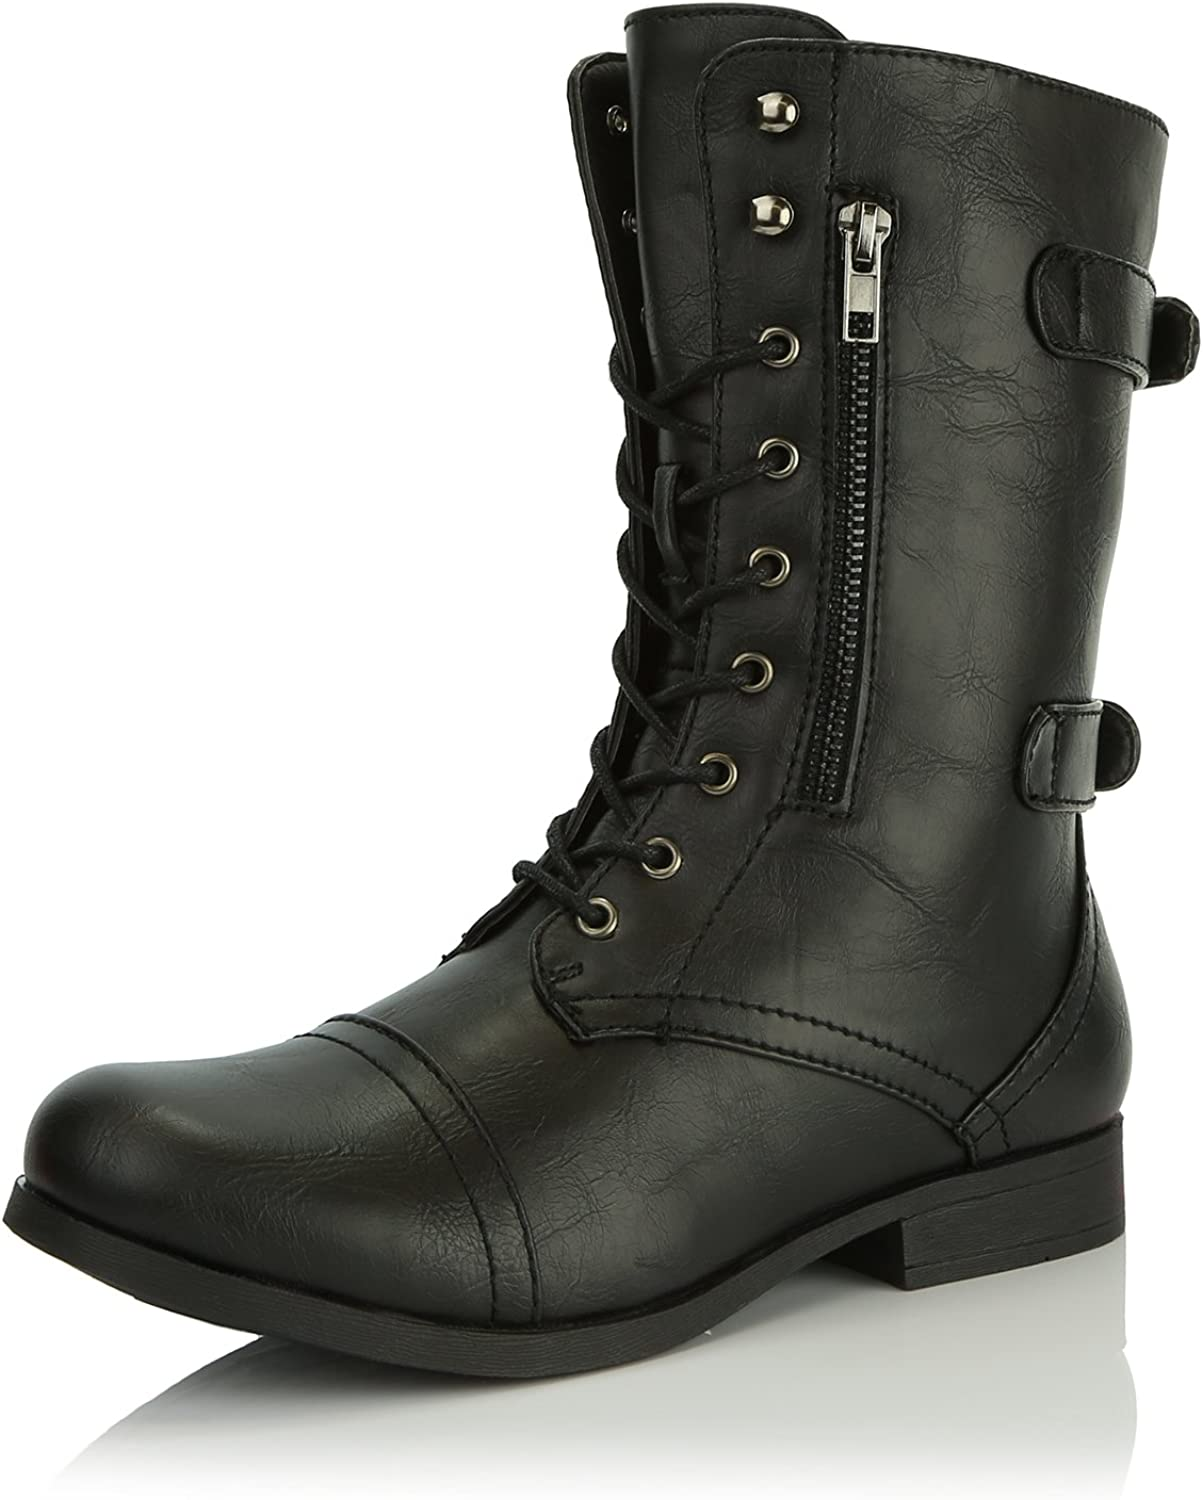 Dailyshoes Women's Evan-10 Ankle Zipper Strap Military Combat Boots